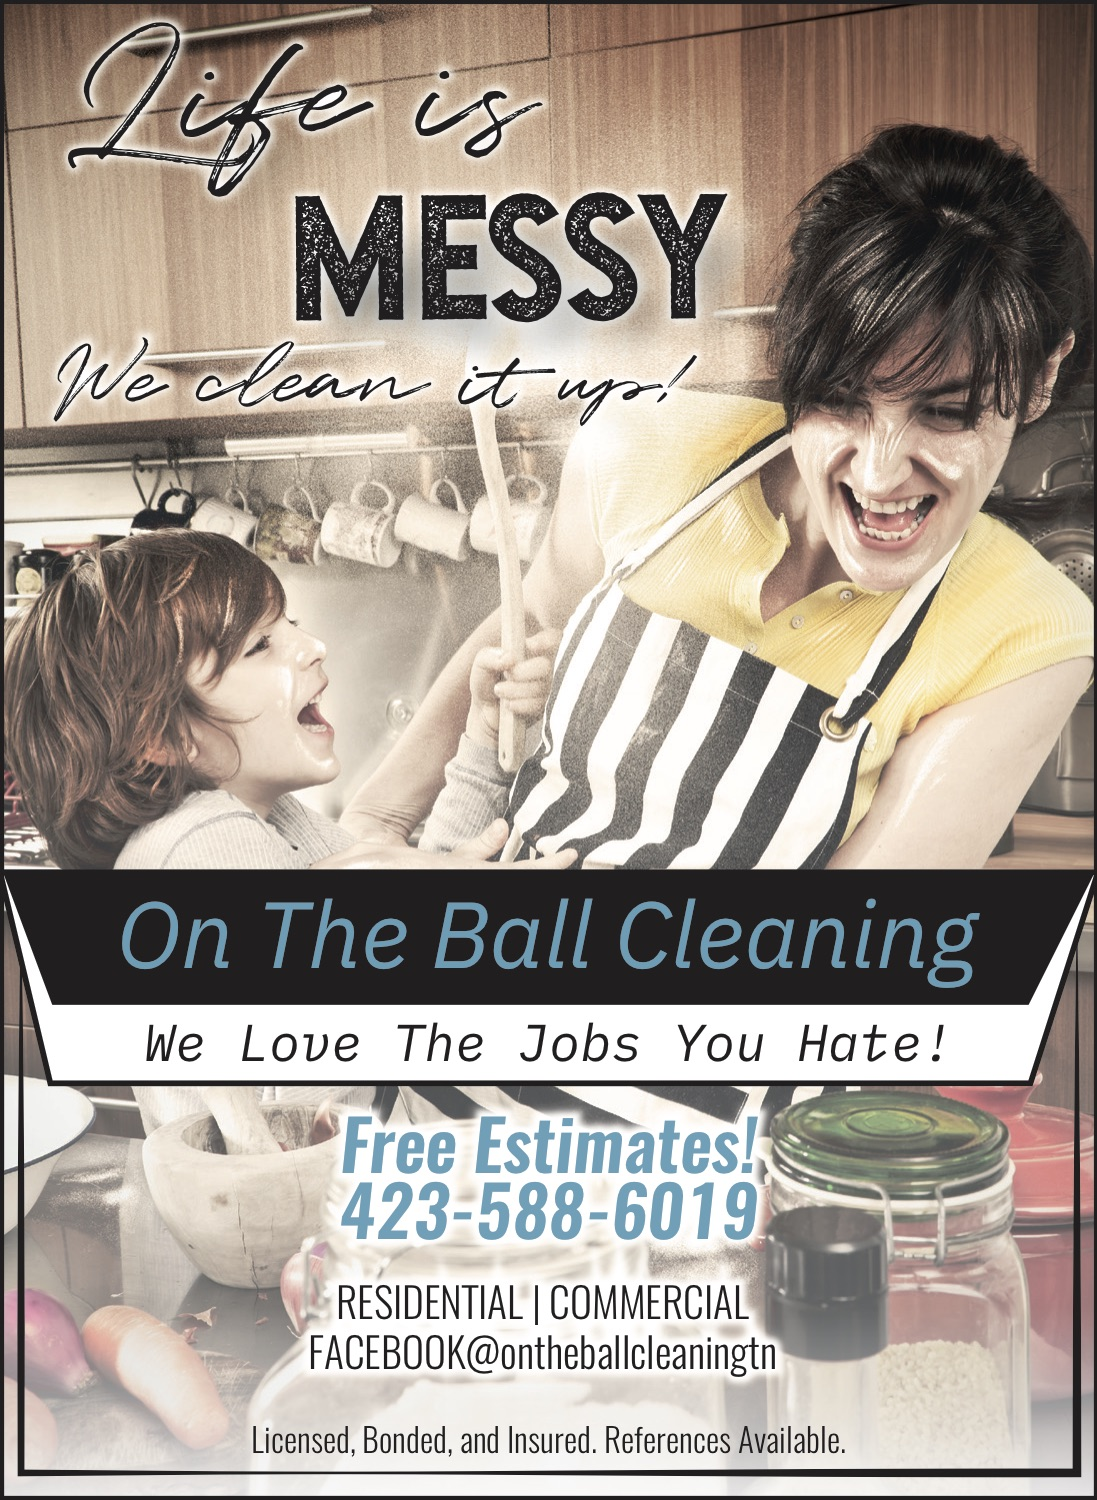 on_the_ball_cleaning-124417_1_4pg_Jul201